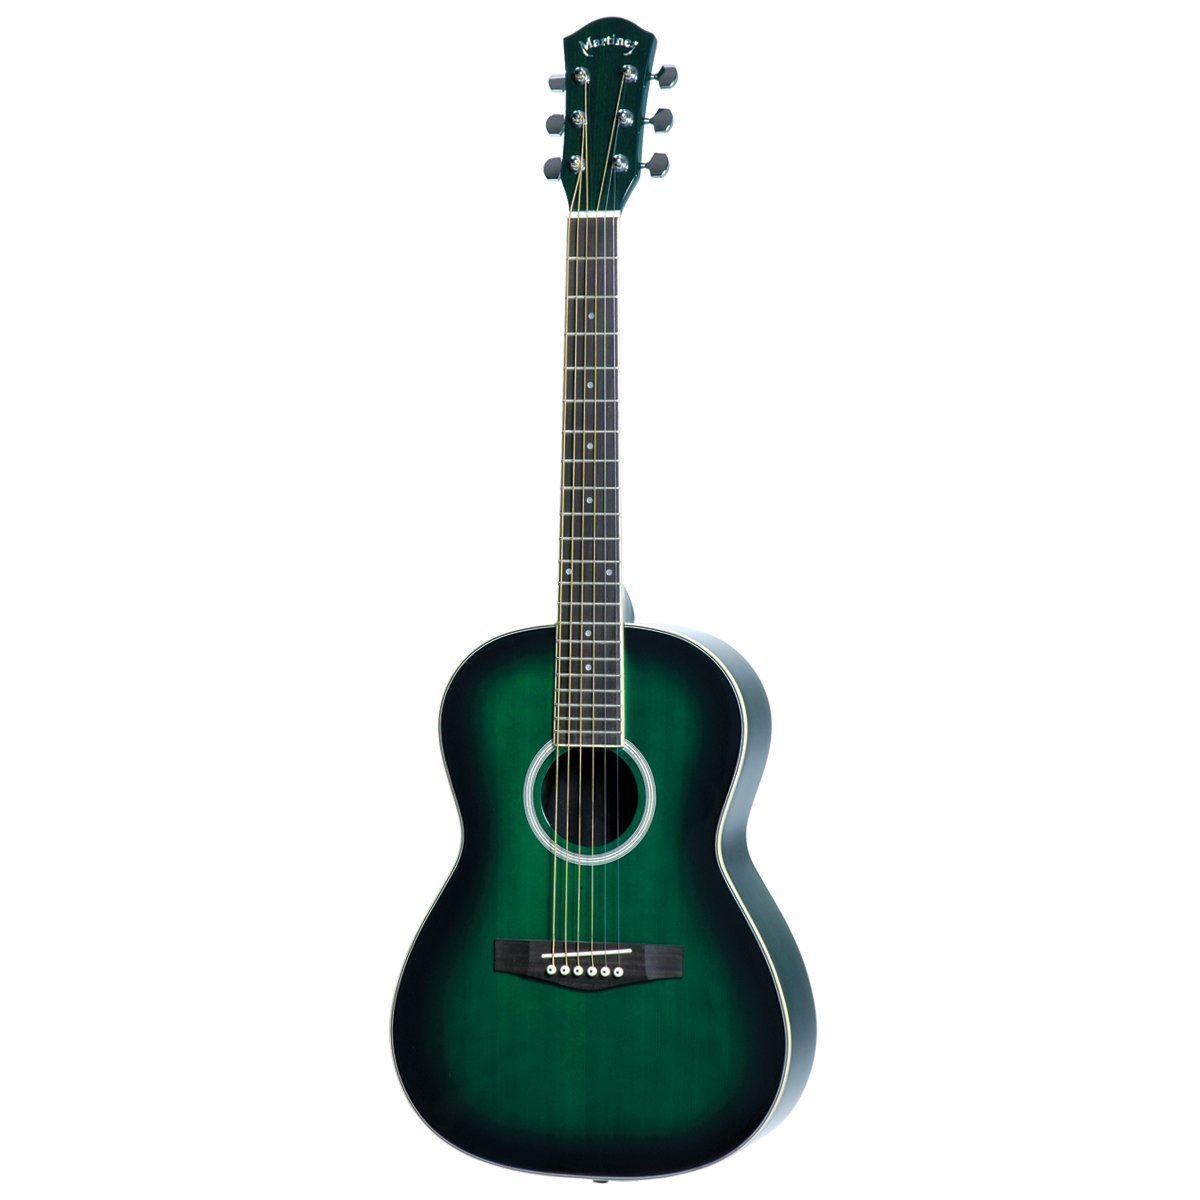 Martinez Beginner Acoustic Small-Body Guitar (Greenburst)-MF-38-GRS-Australia